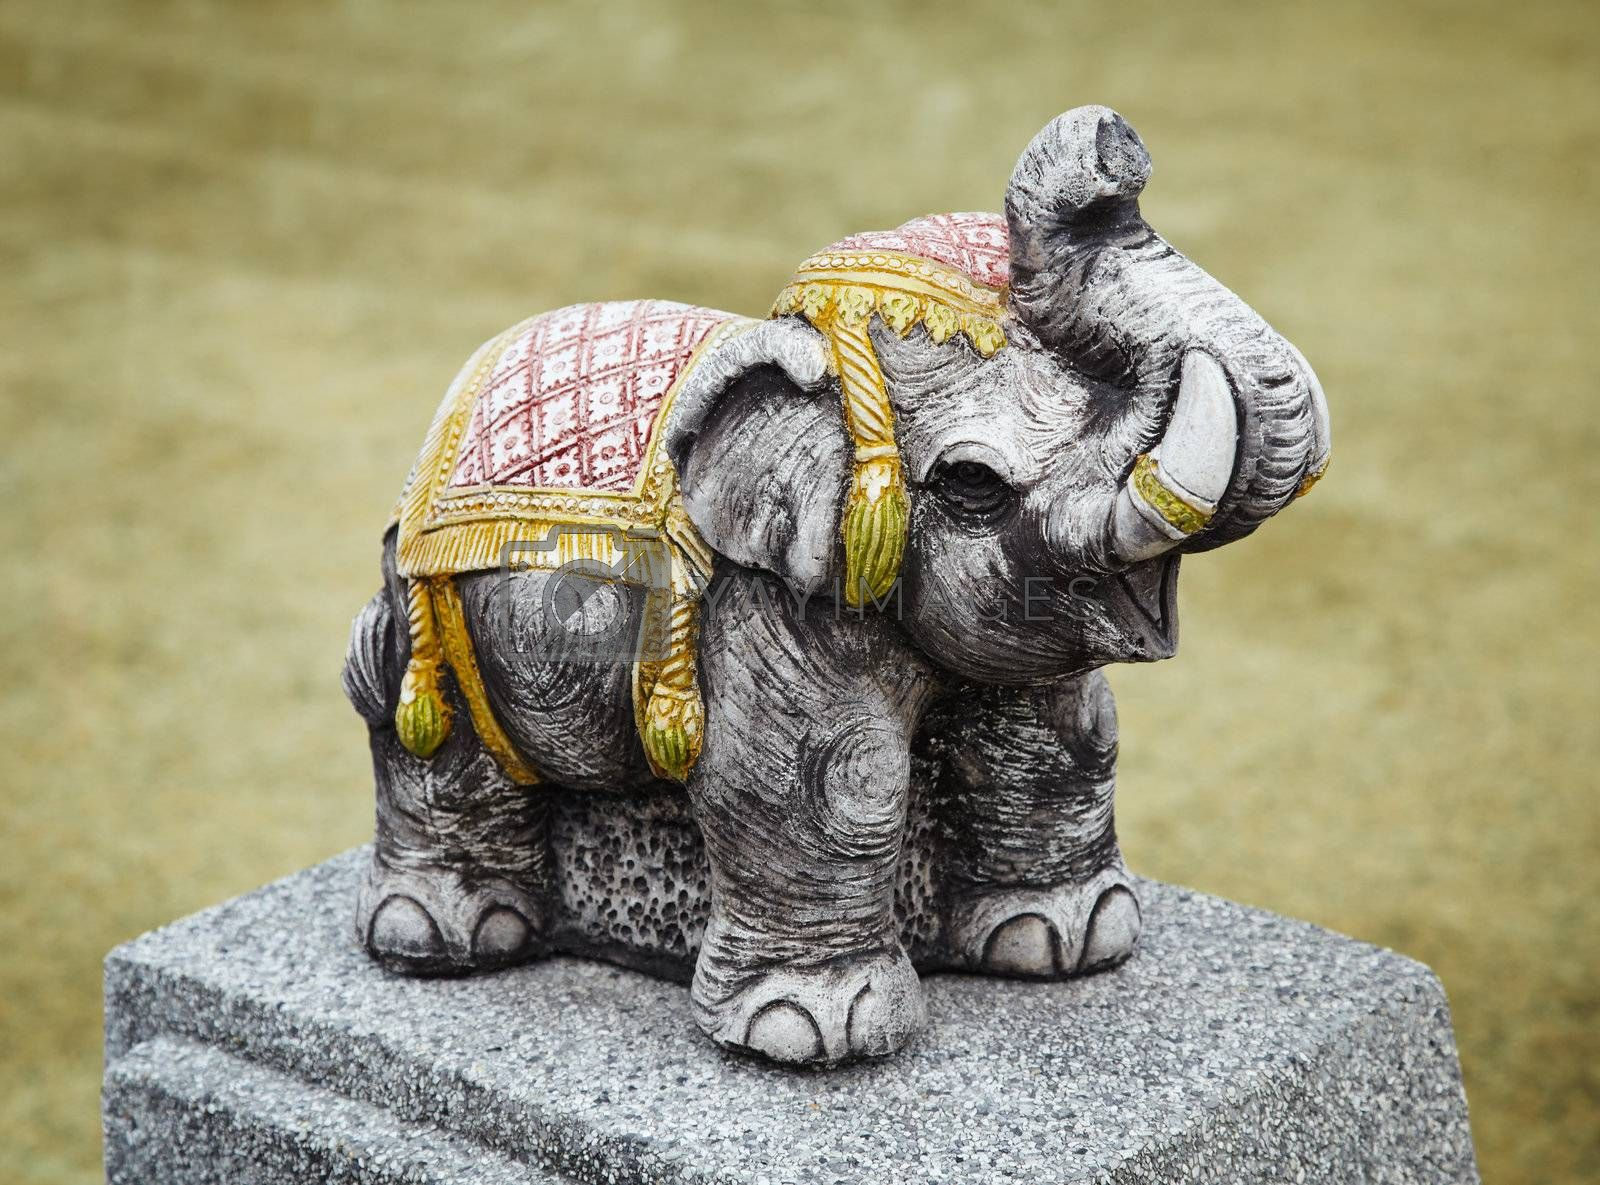 The concrete sculpture of an old Indian elephant